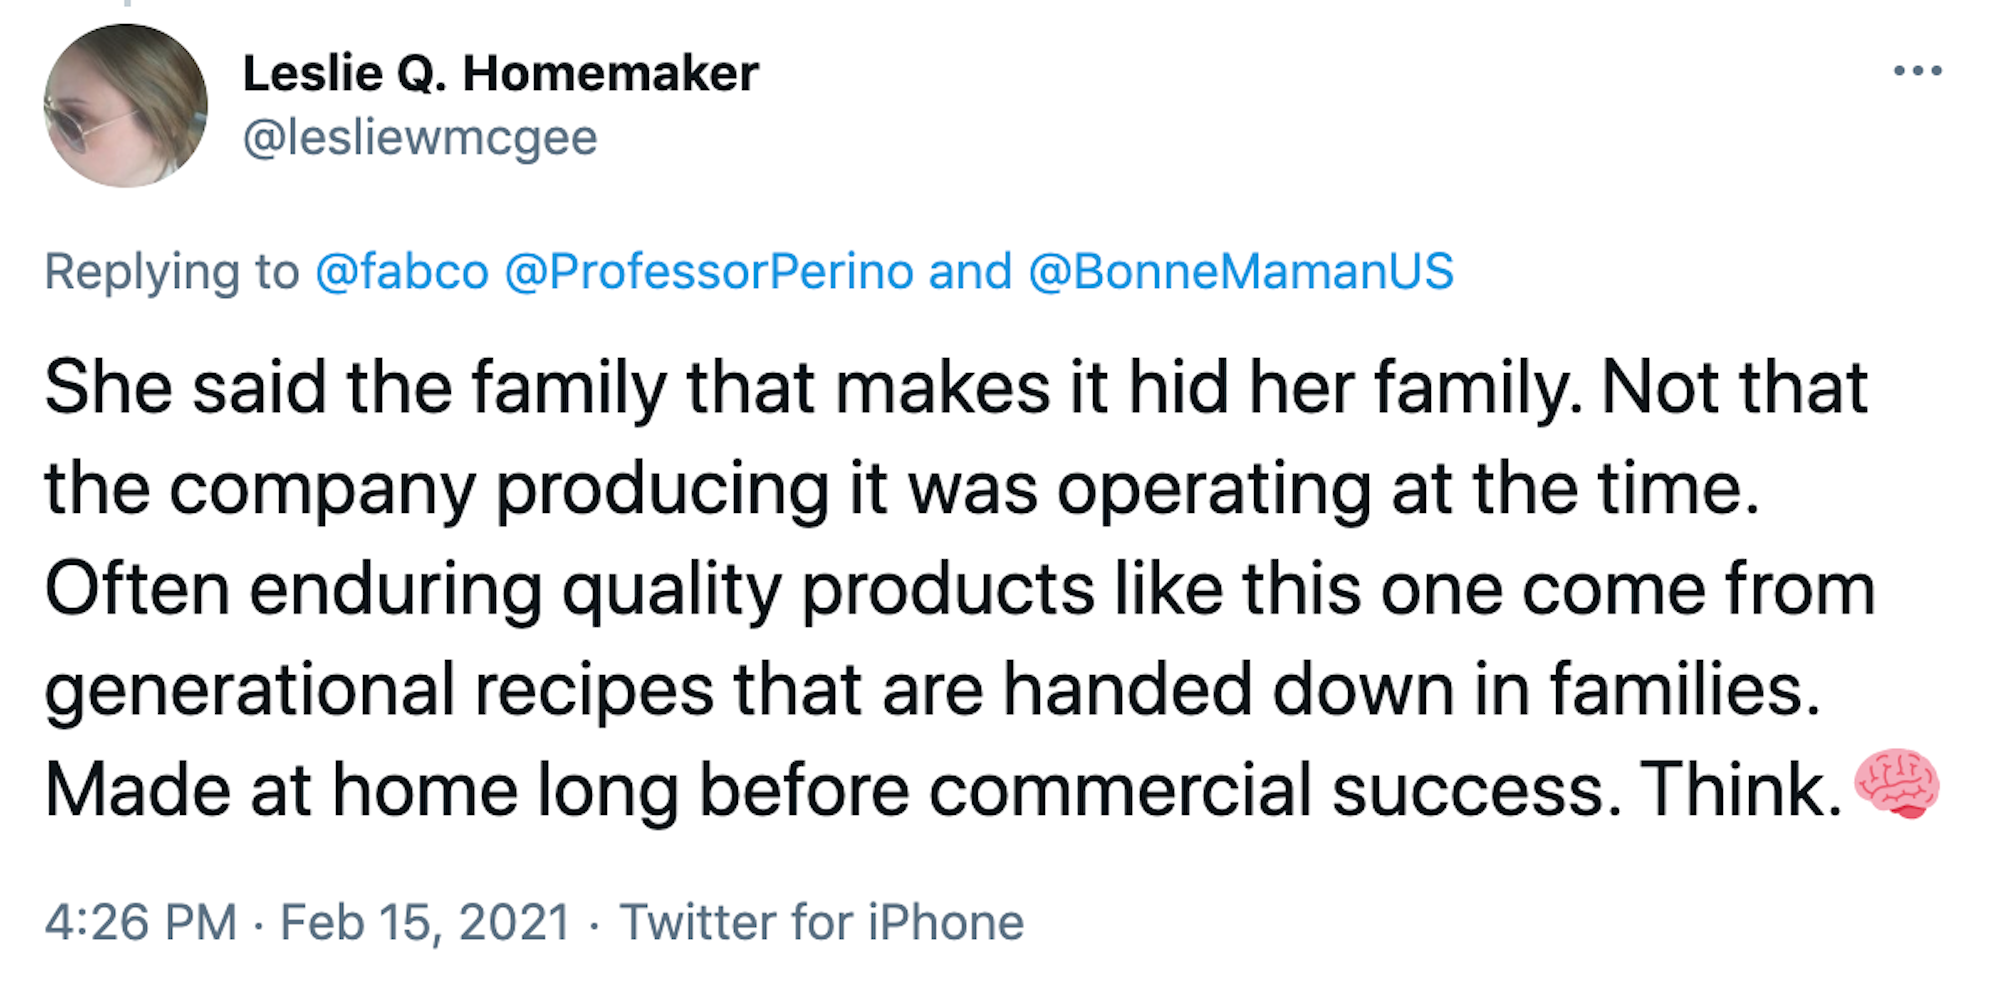 She said the family that makes it hid her family. Not that the company producing it was operating at the time. Often enduring quality products like this one come from generational recipes that are handed down in families. Made at home long before commercial success. Think.🧠